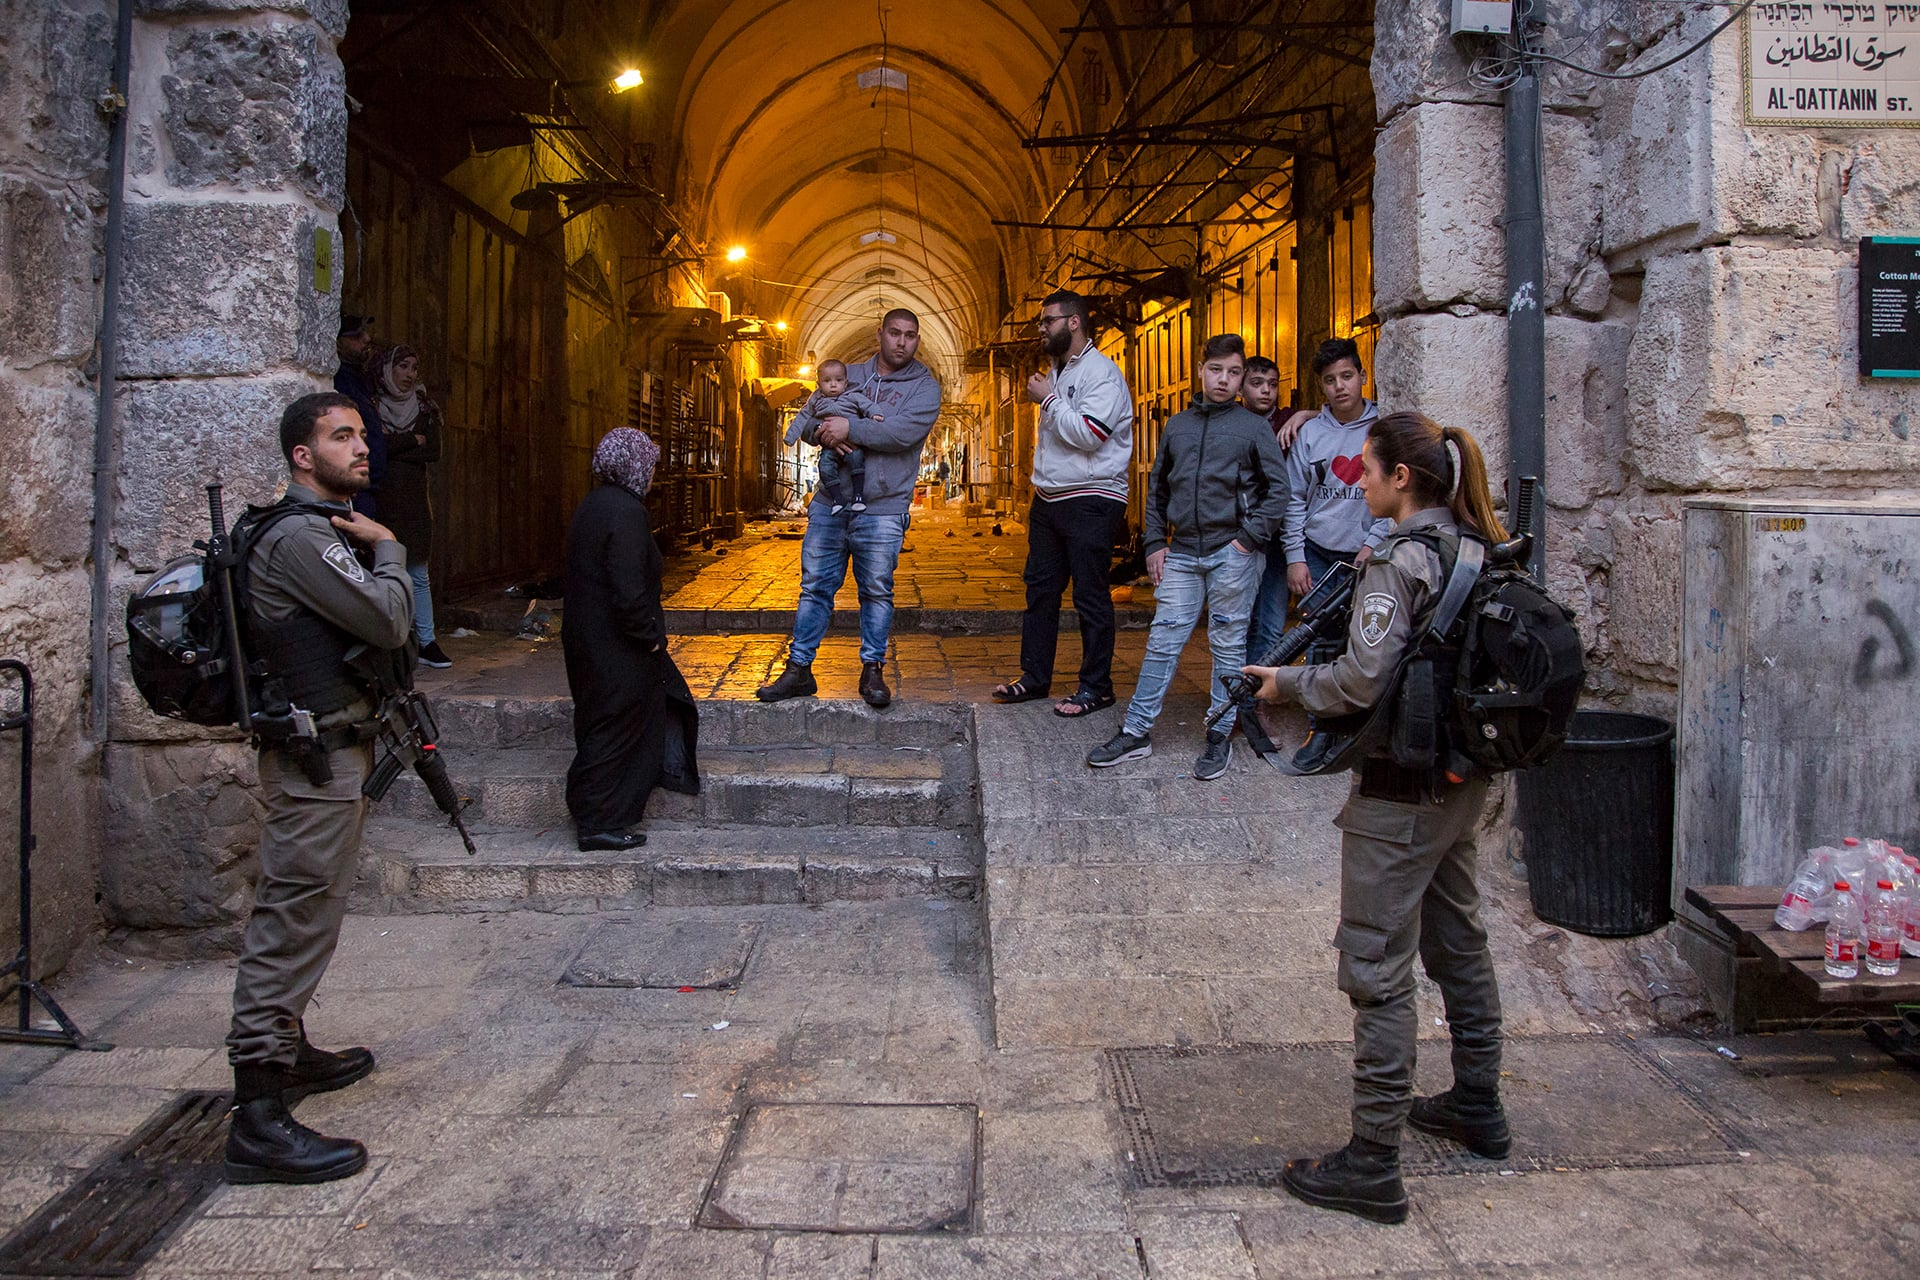 Israeli forces prevent Palestinians from exiting Al-Qattanin market on March 14, 2018, in the Old City of Jerusalem. (Photo: Faiz Abu Rmeleh)